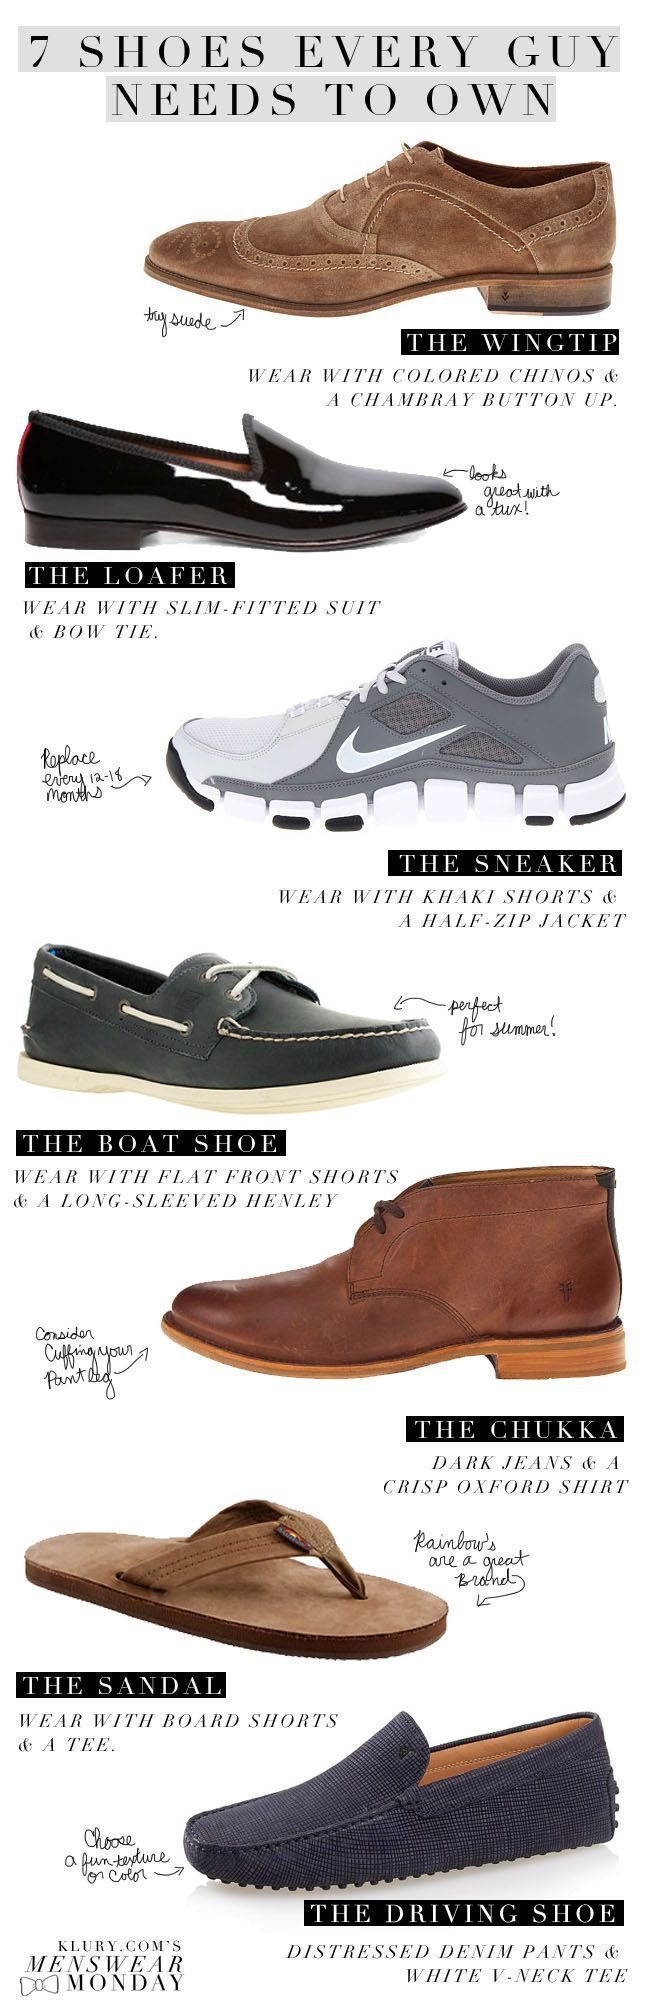 Shoes every guy should own! #dapper #mensfashion #menstyle